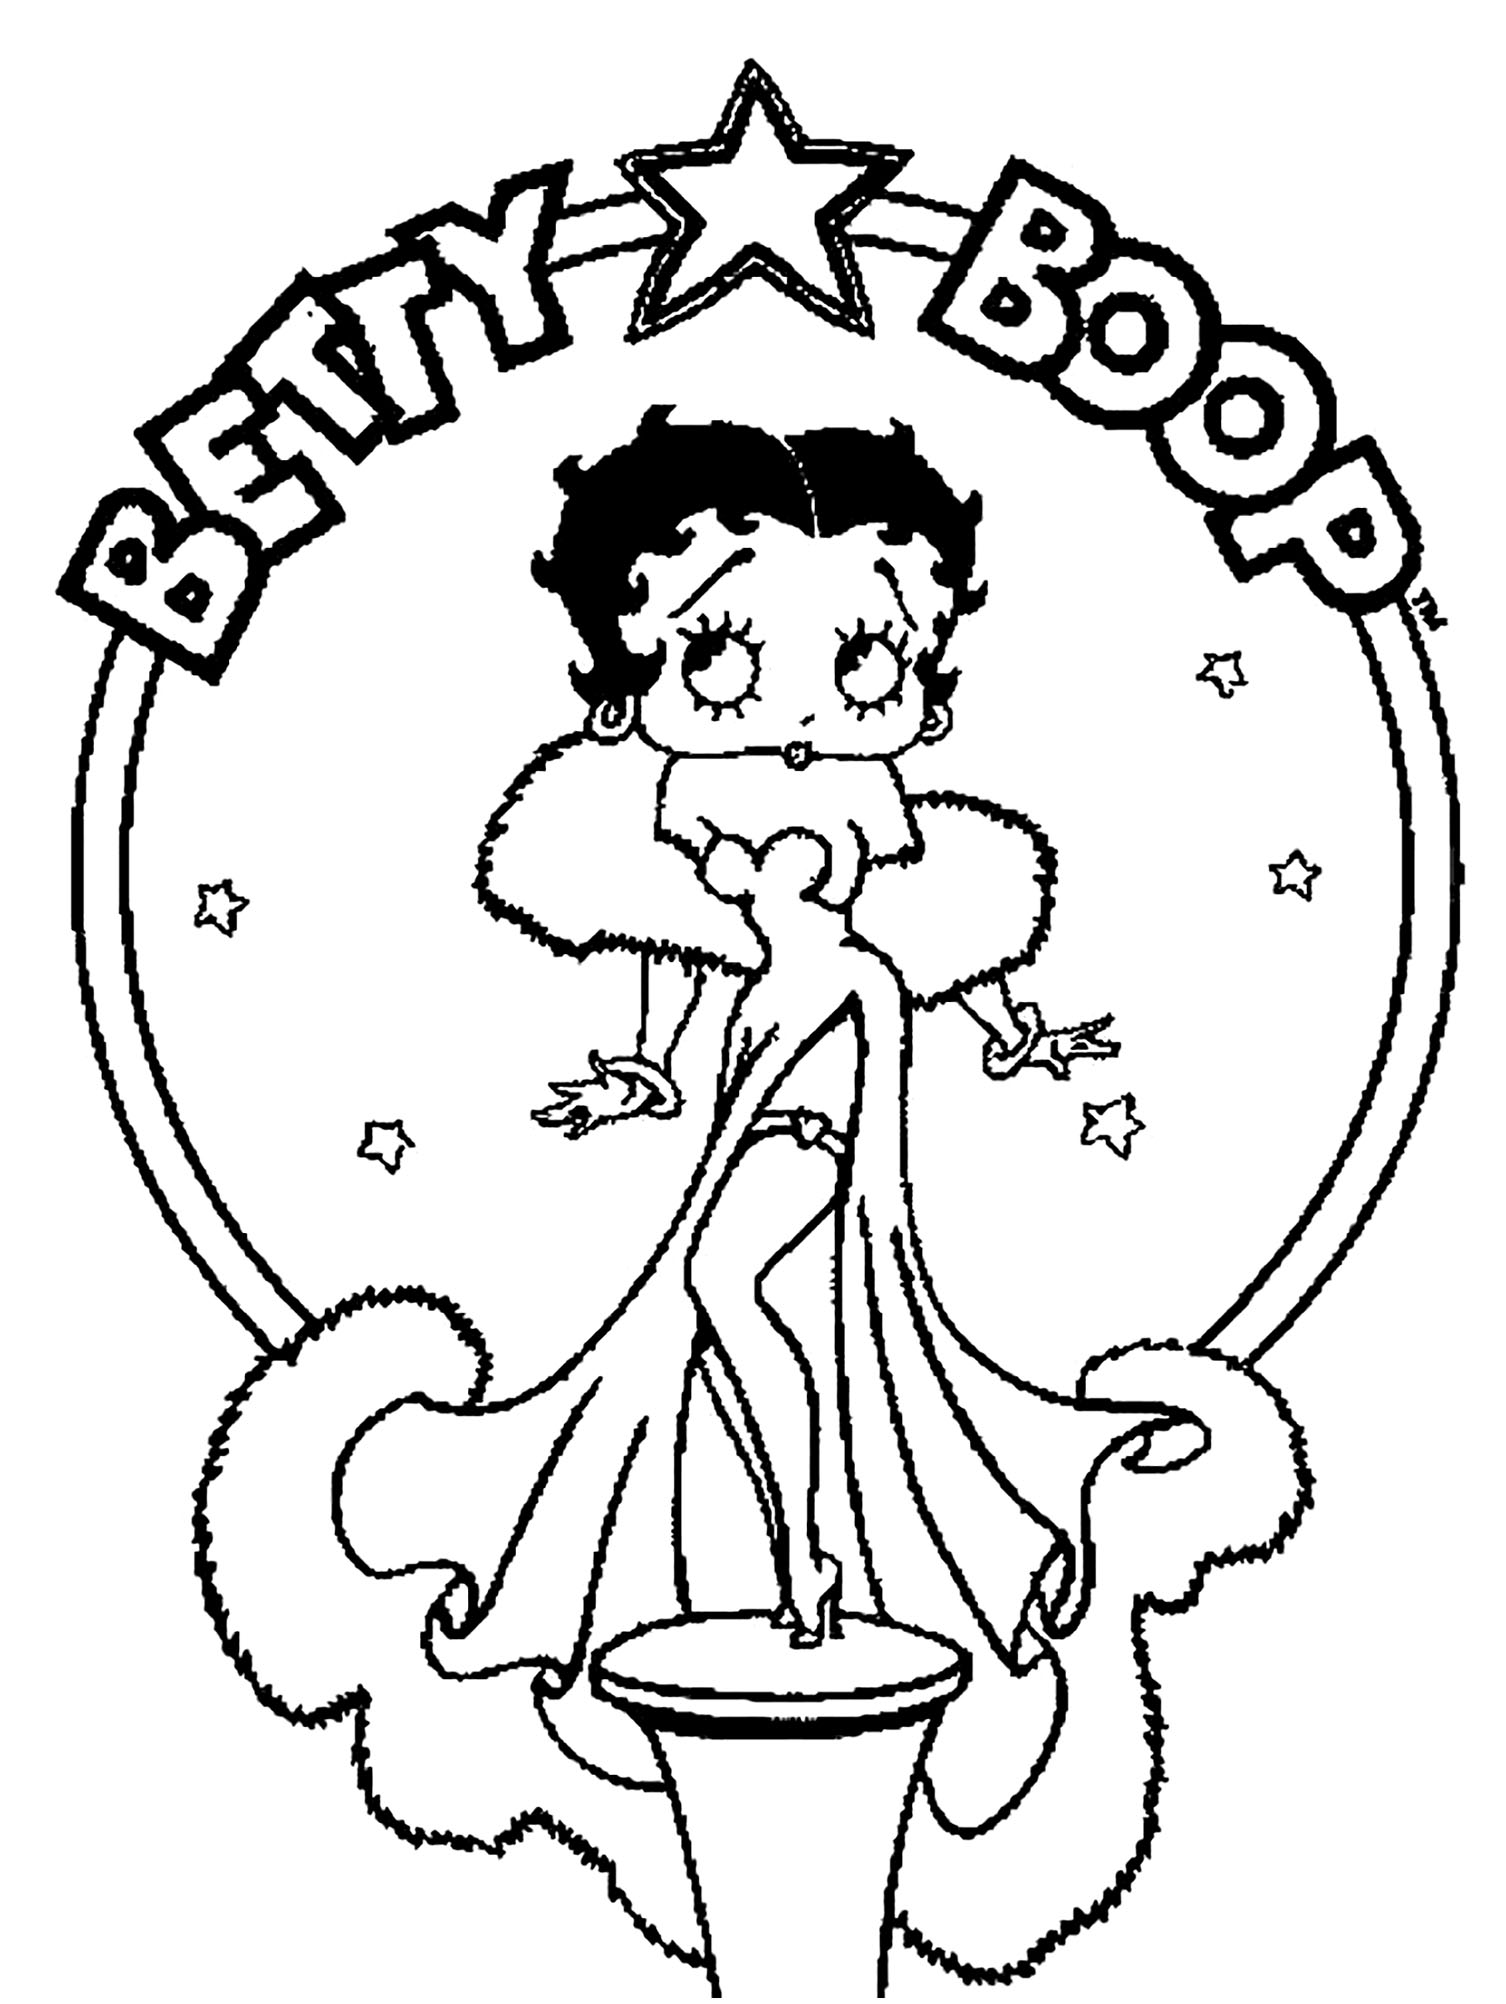 betty boop coloring pictures free printable betty boop coloring pages coloring home coloring betty boop pictures